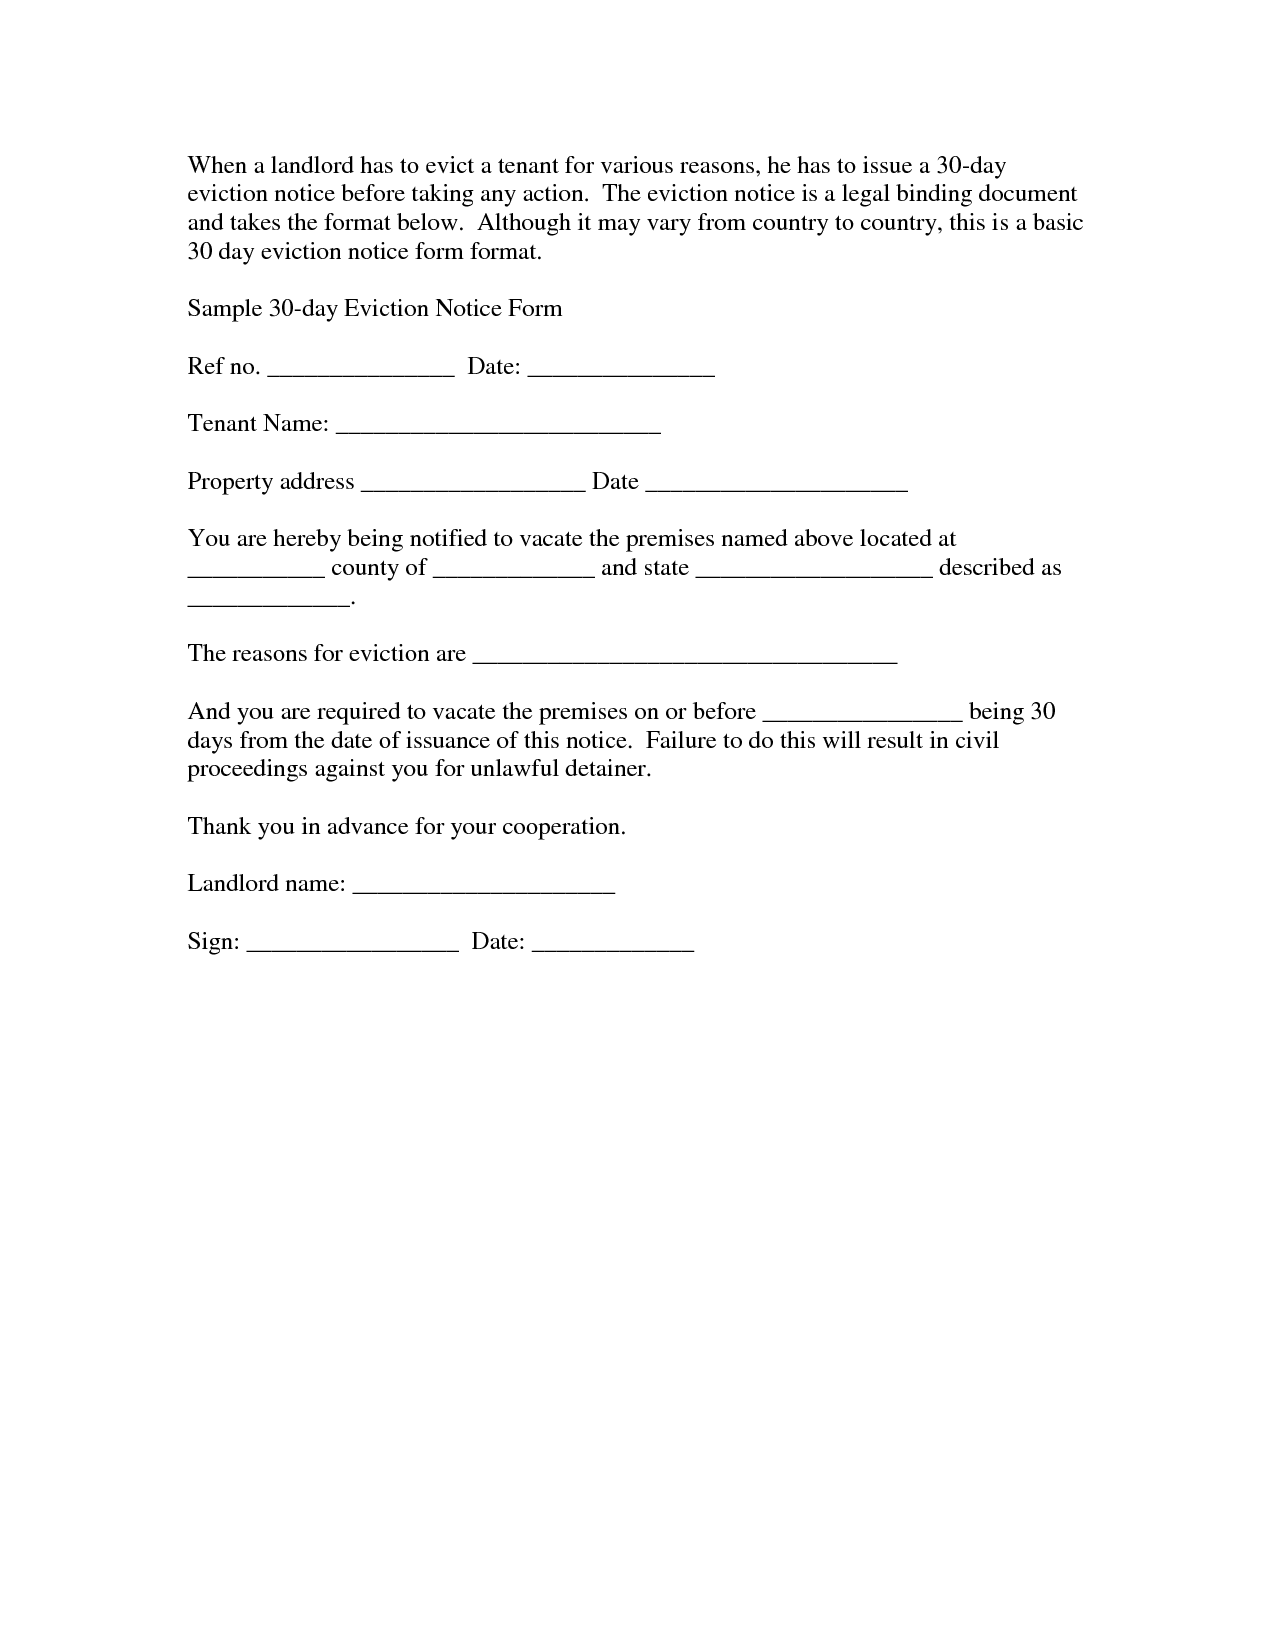 Free Downloadable Eviction Forms – 30 Day Notice Template